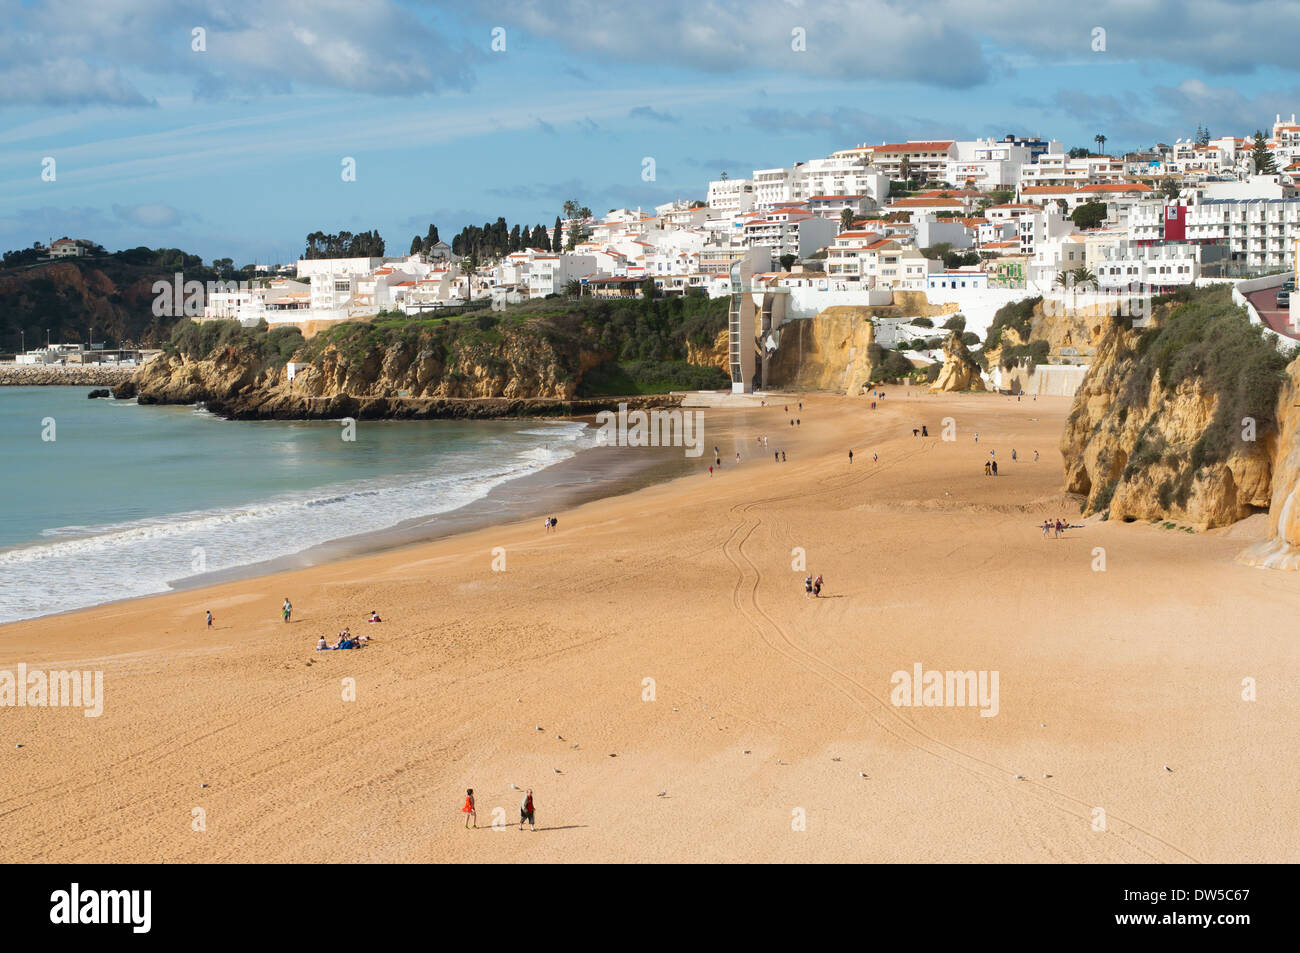 the sandy beach and white painted town at albufeira algarve stock